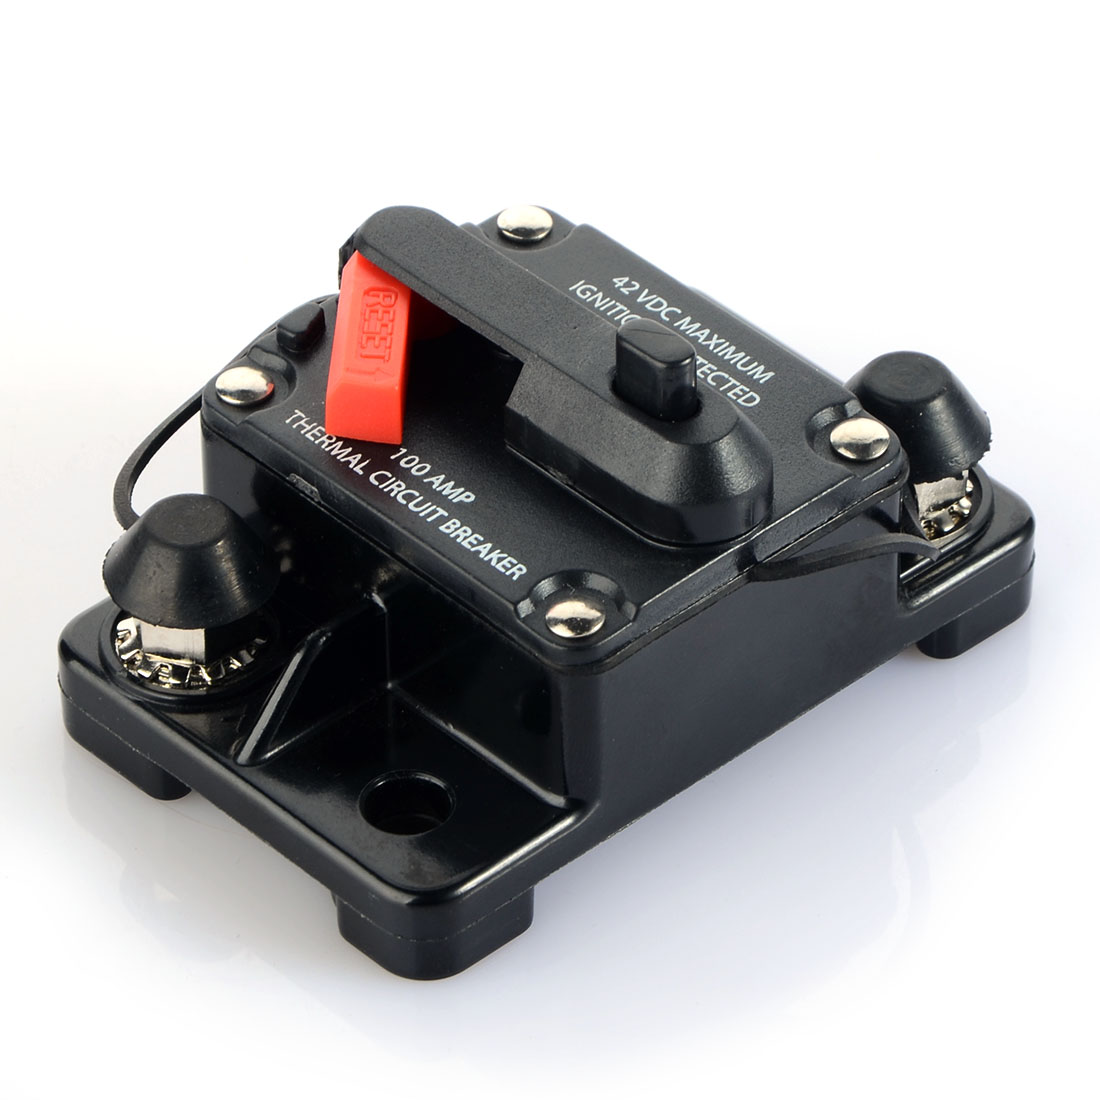 80A/100A/150A/200A/250A Amp Car Auto Audio Marine Boat Audio Circuit Breaker DC 12V/24V/42V marine 52mm ammeter amp gauge with current sensor for motorcycle car marine boat yacht with backlight 12v 24v 150a 80a